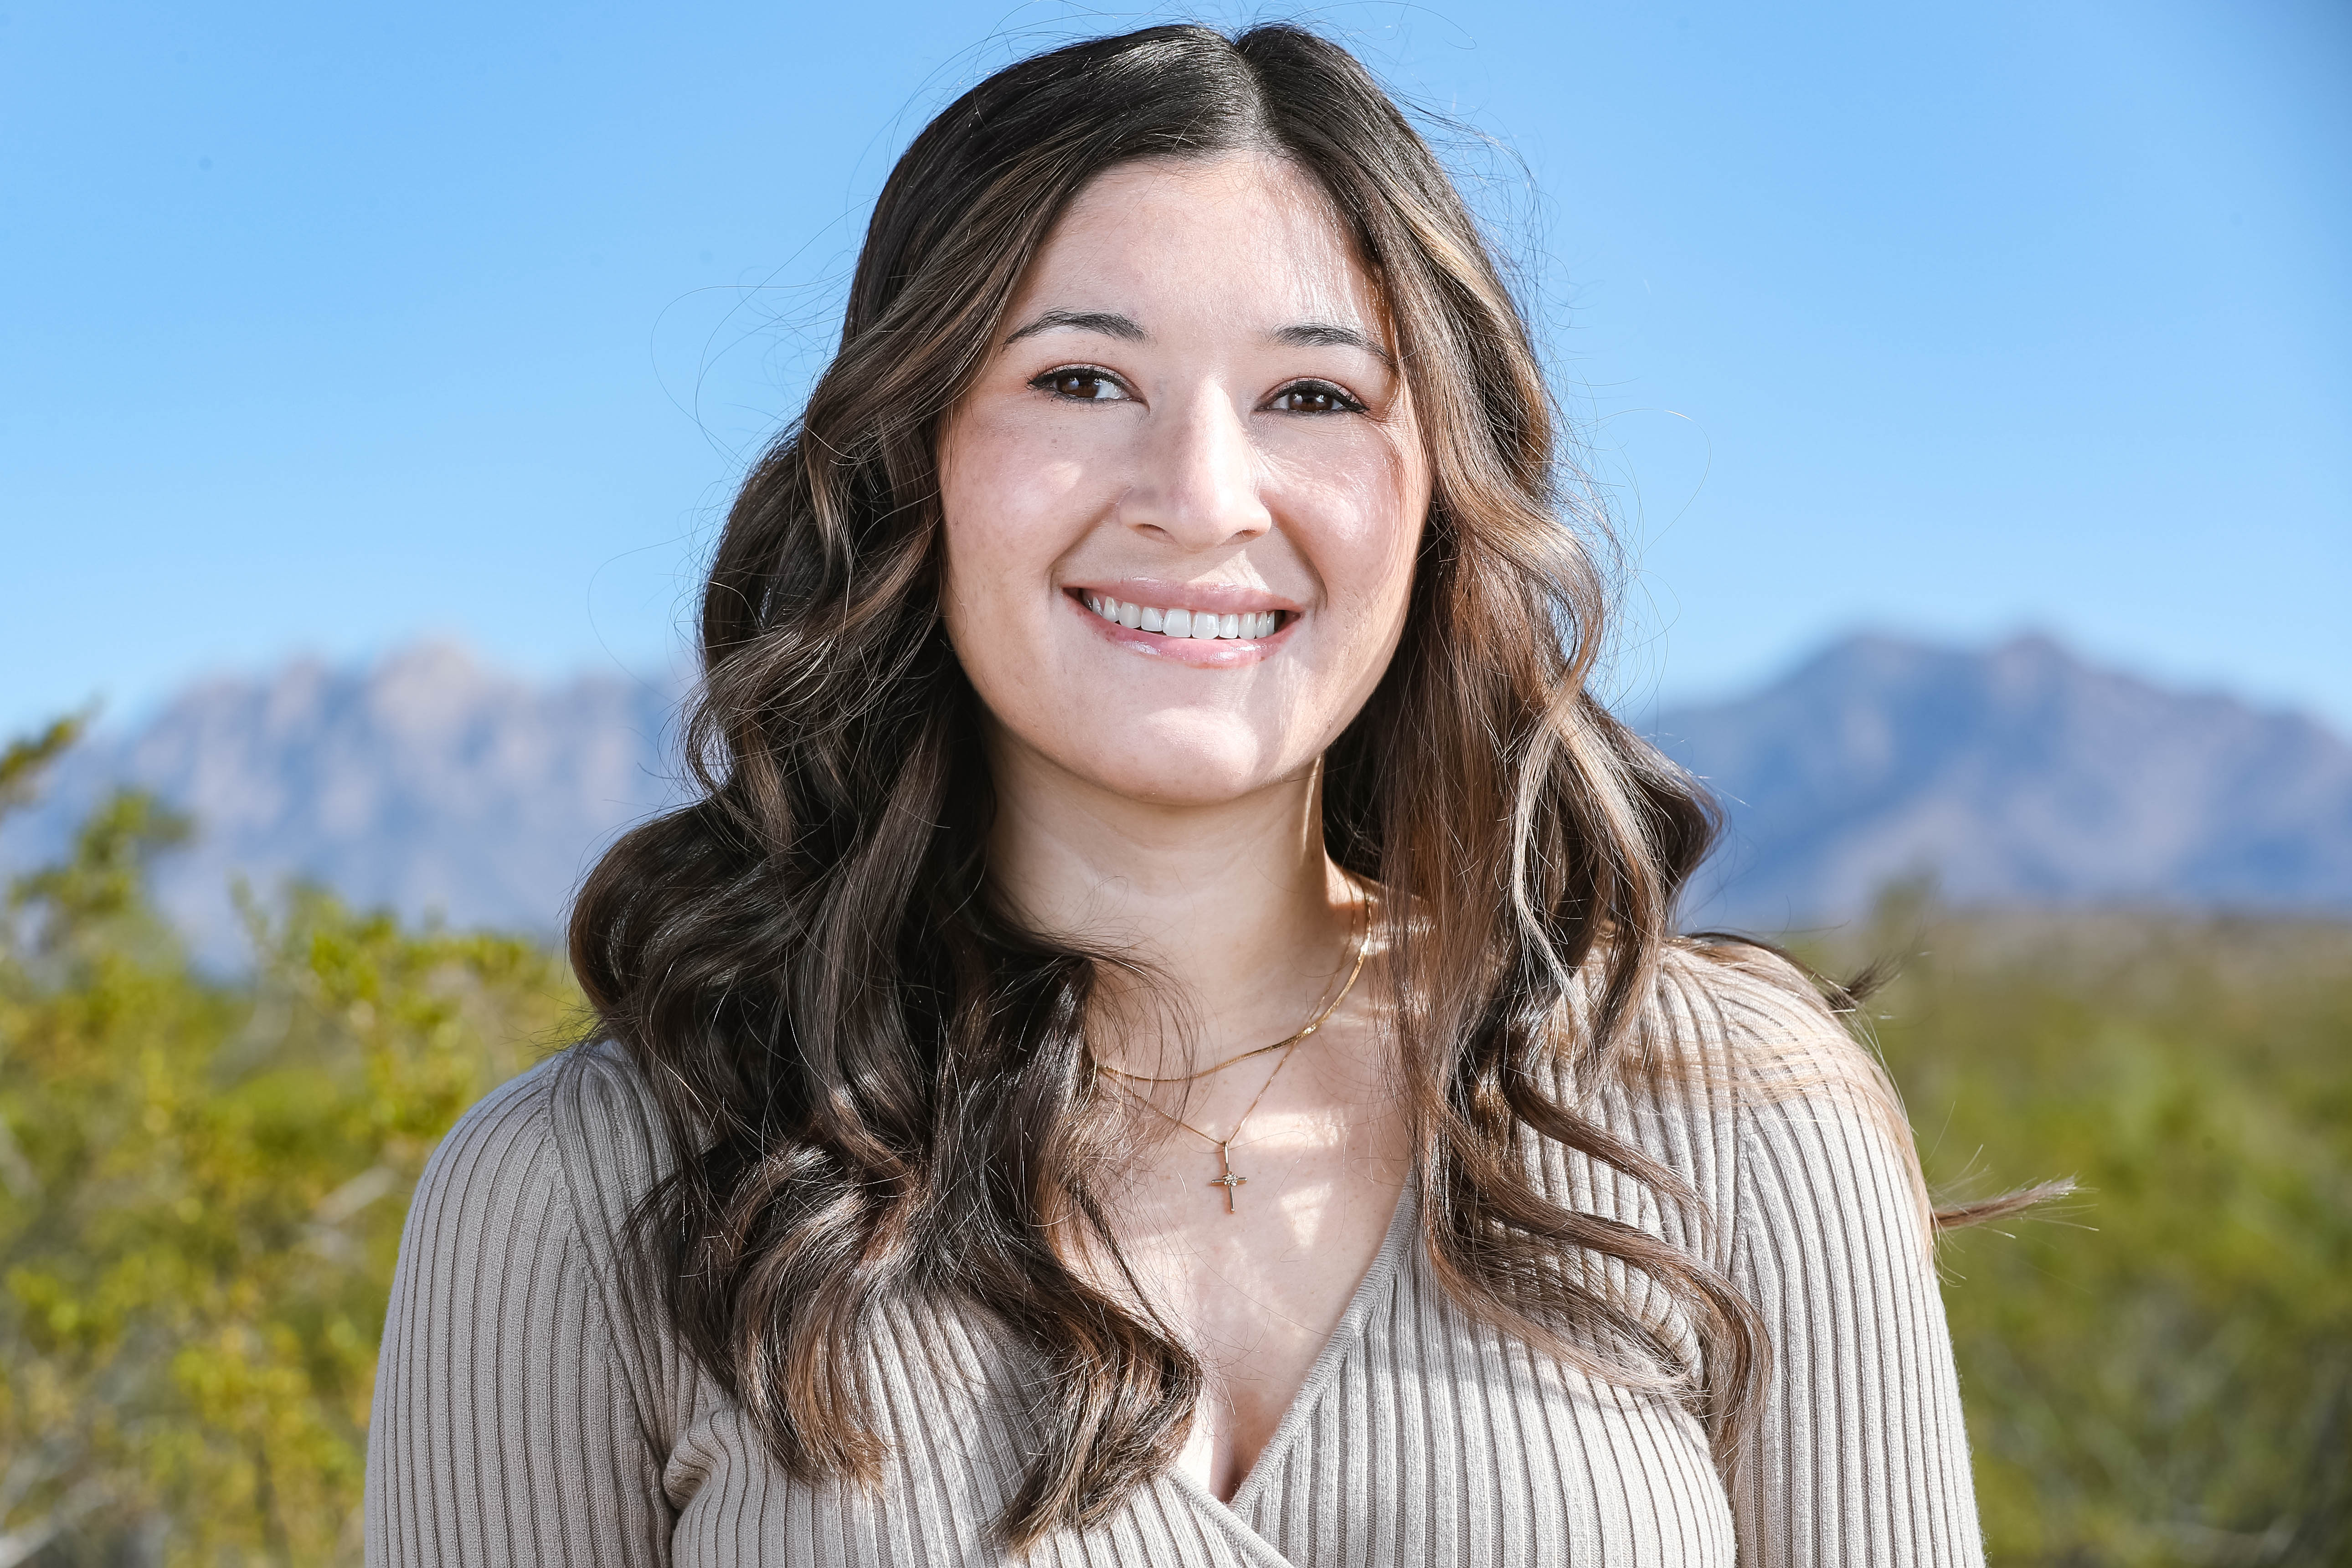 Julia Palomino, of Las Cruces, once considered law school before pursuing a career in nursing. She's pictured here in the backyard of her home in Las Alturas on Wednesday, Nov. 11, 2020.